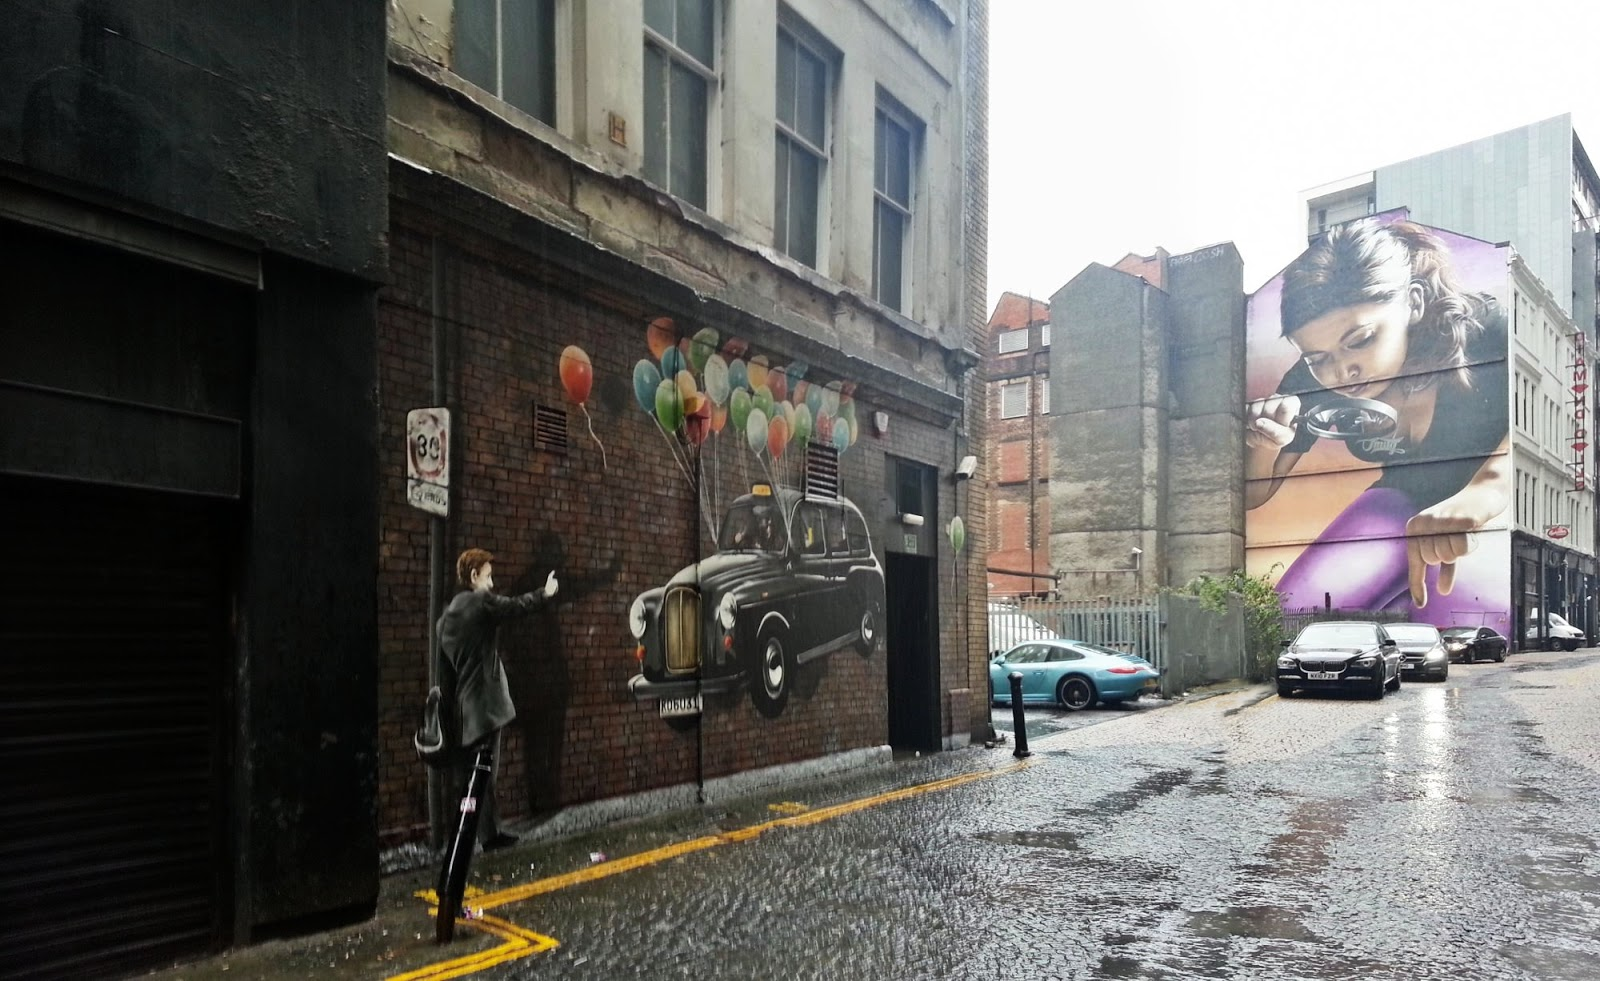 Taxi, Rogue One, Glasgow